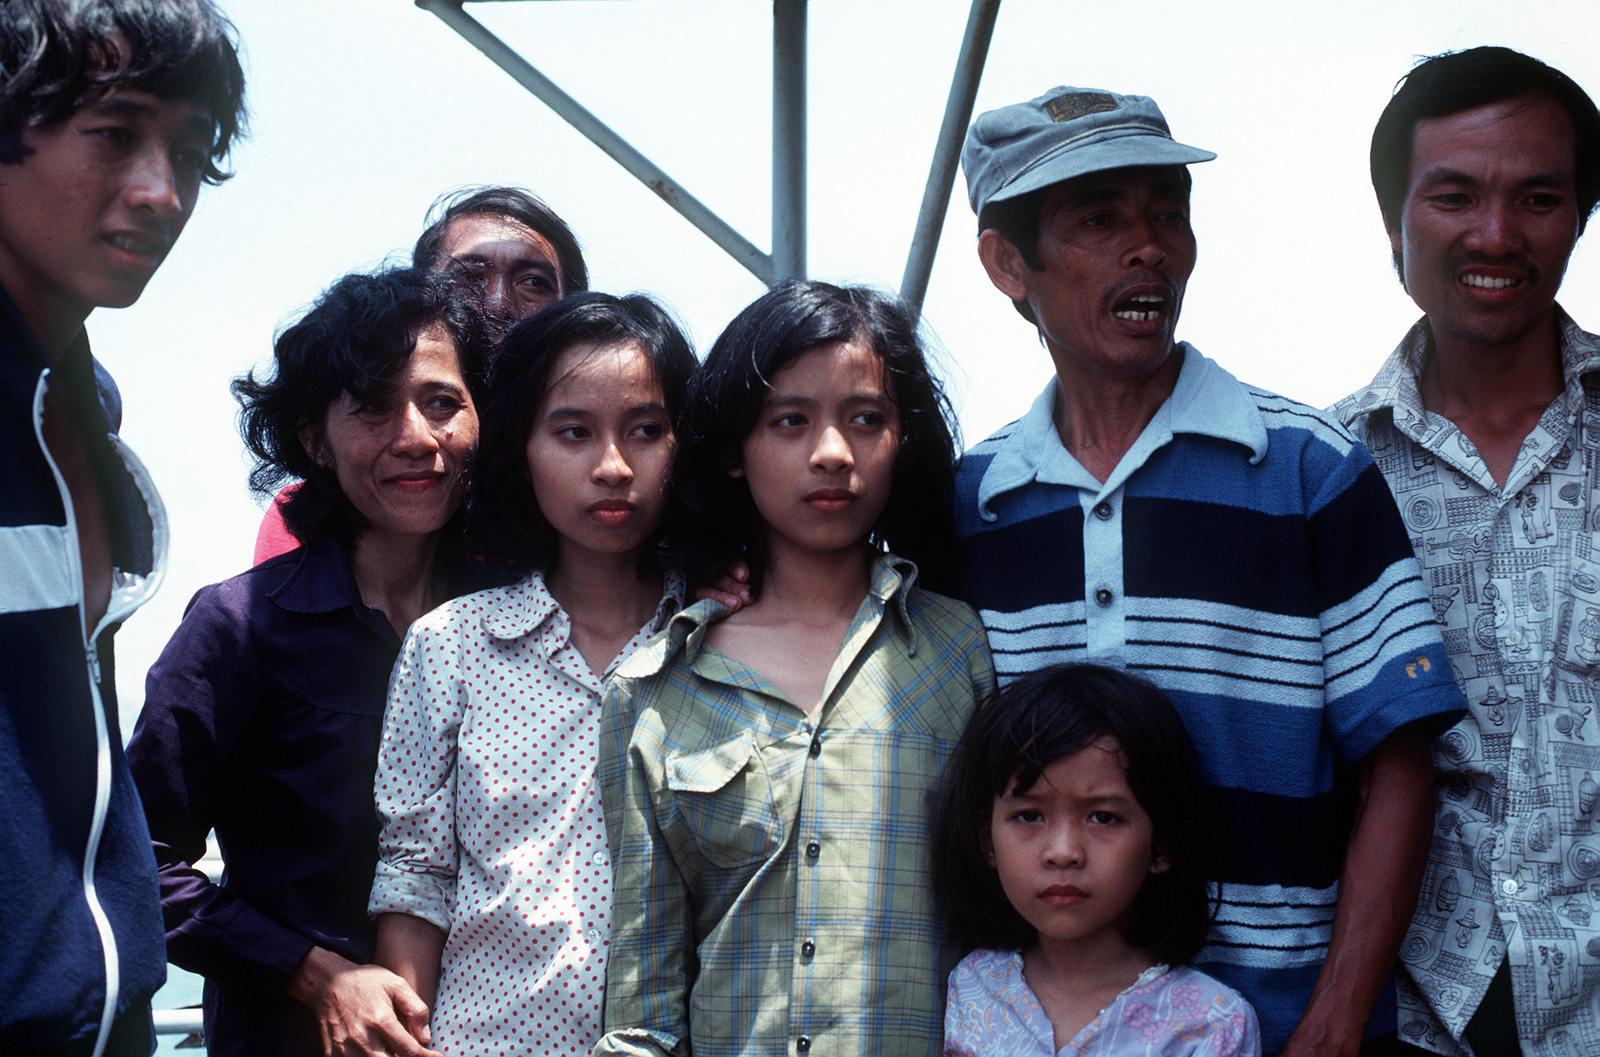 A Vietnamese man and members of his family wait to disembark from the Military Sealift Command merchant ship USNS MASON LYKES. They were among a group of 59 refugees who were rescued from a small boat in the open ocean by the crew of the MASON LYKES